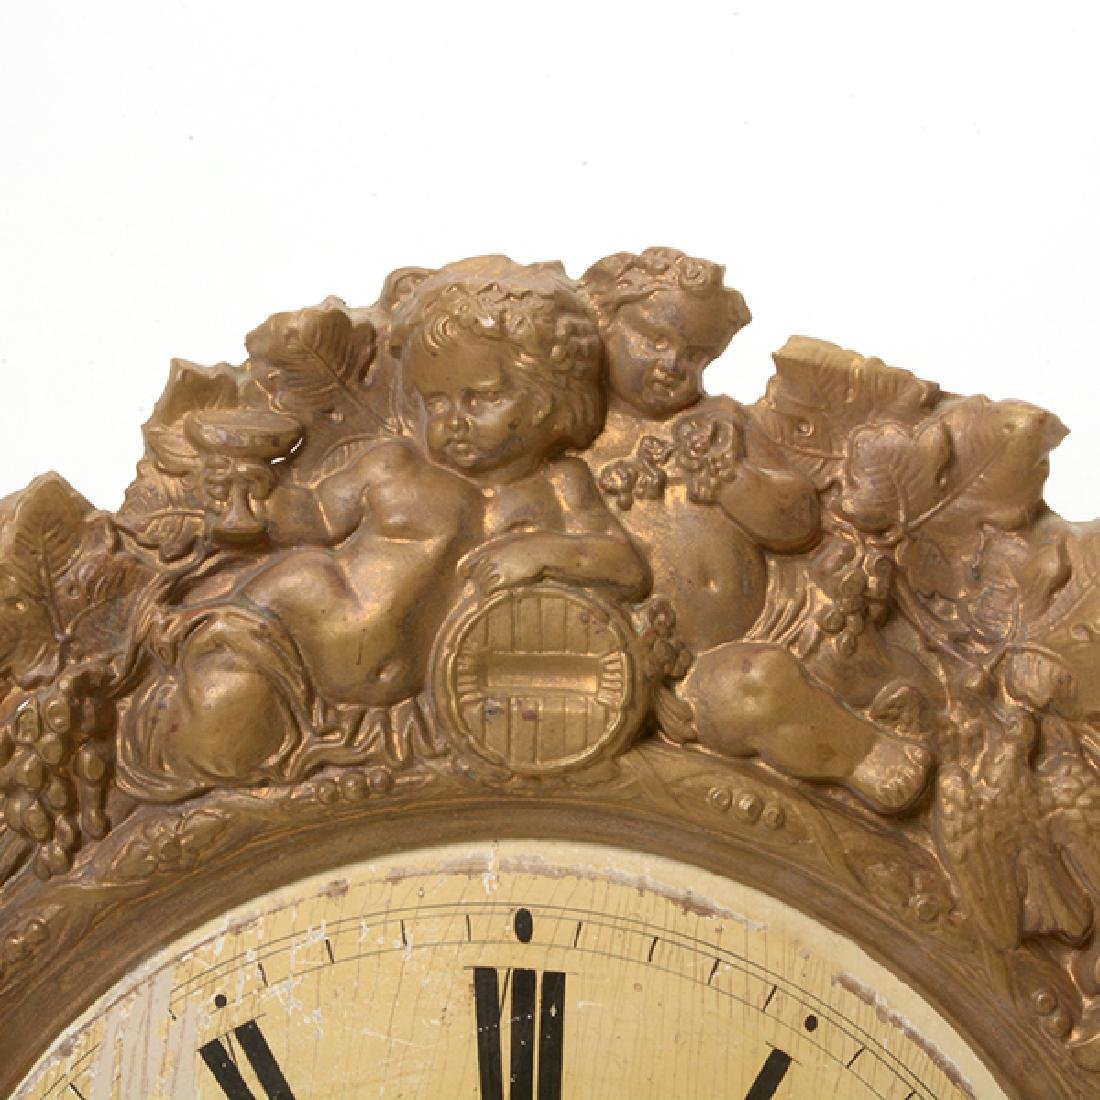 French Gilt Brass Repousse Wall Clock - 2